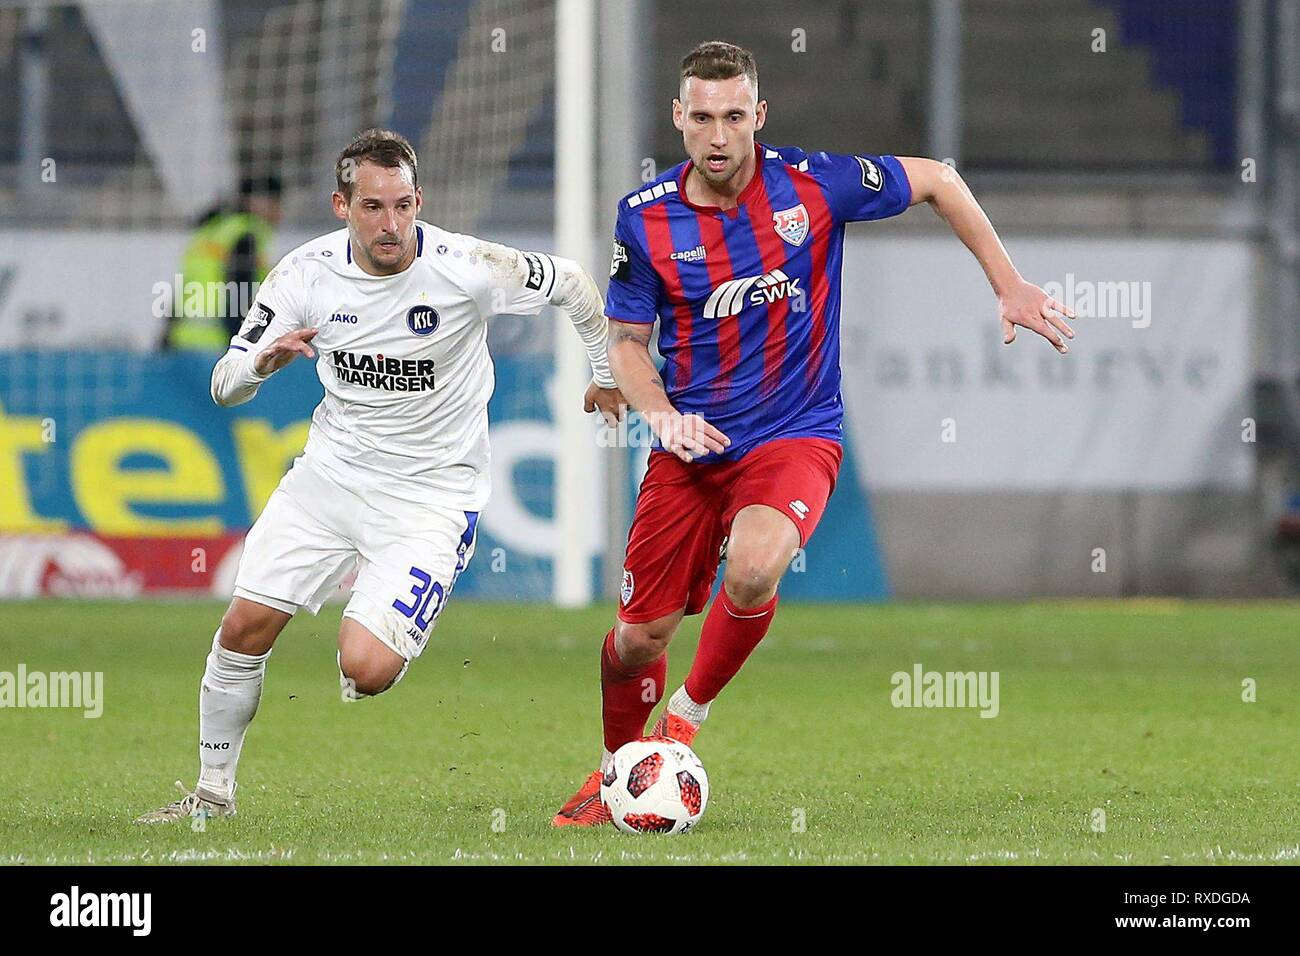 firo: 08.03.2019 Football, 3. Bundesliga, season 2018/2019 KFC Uerdingen 05 - Karlsruher SC Manuel Konrad (# 28, KFC Uerdingen 05) in the running duel with Anton Fink (# 30, Karlsruher SC) | usage worldwide - Stock Image